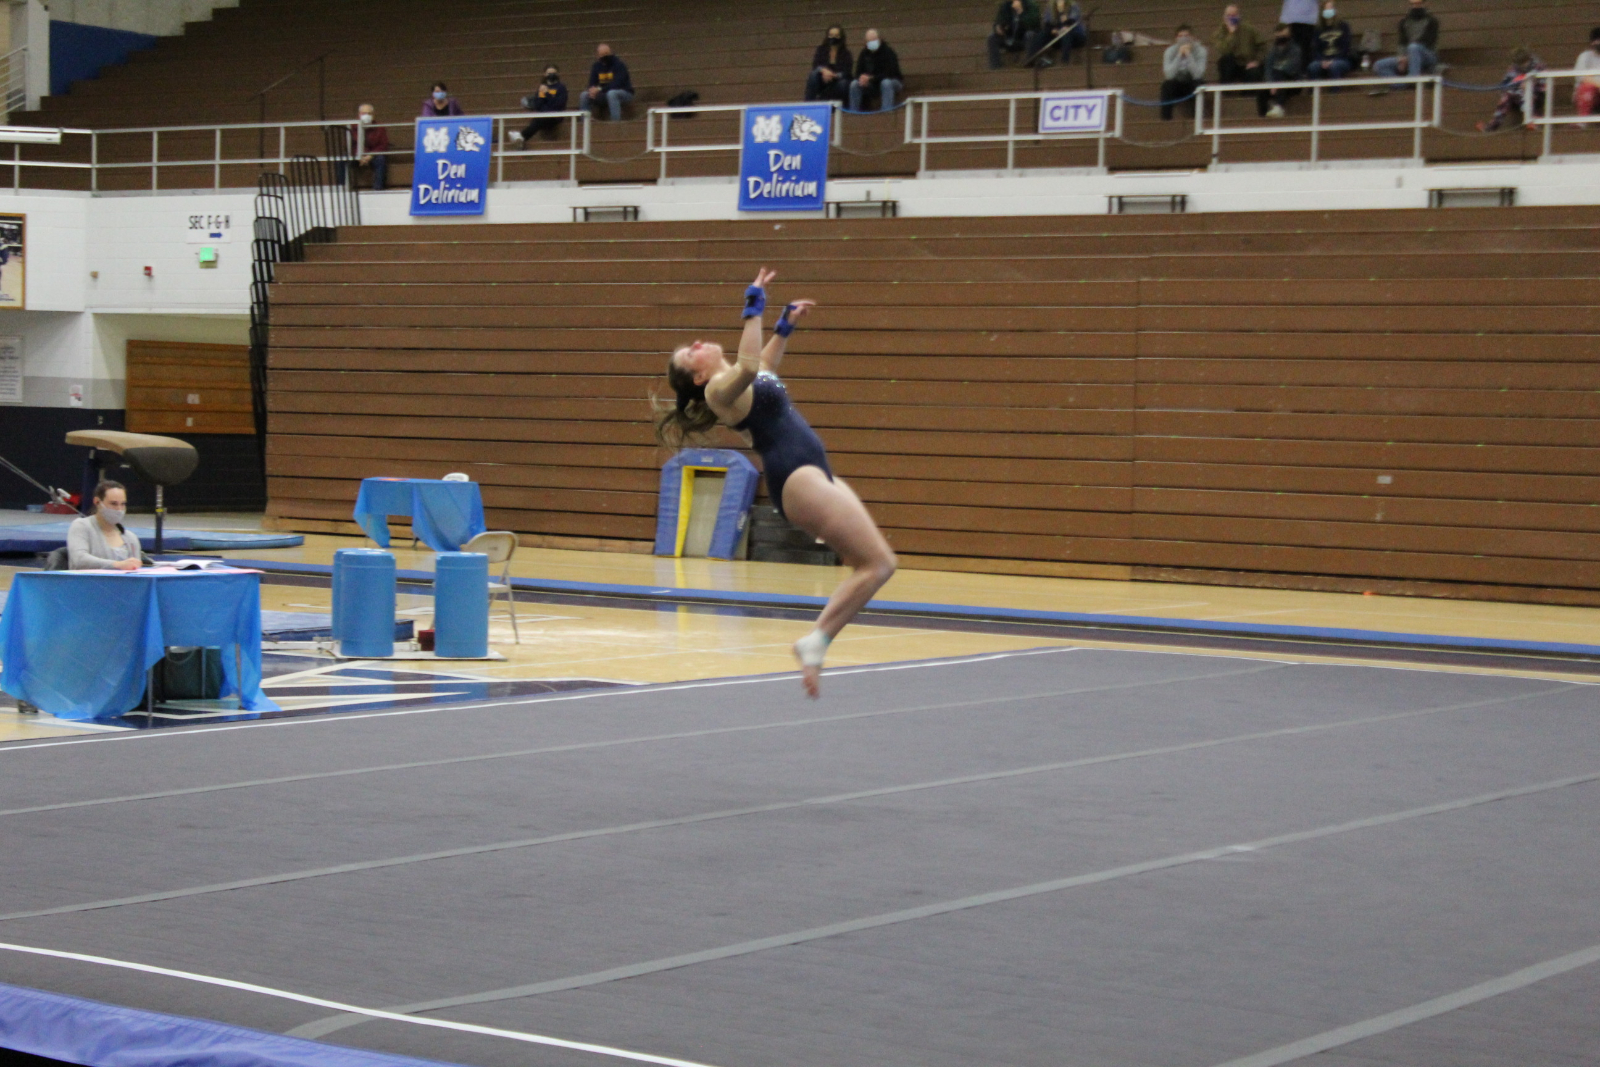 Gymnastics @ Michigan City 1/11/21  (Photo Gallery 1 of 2)